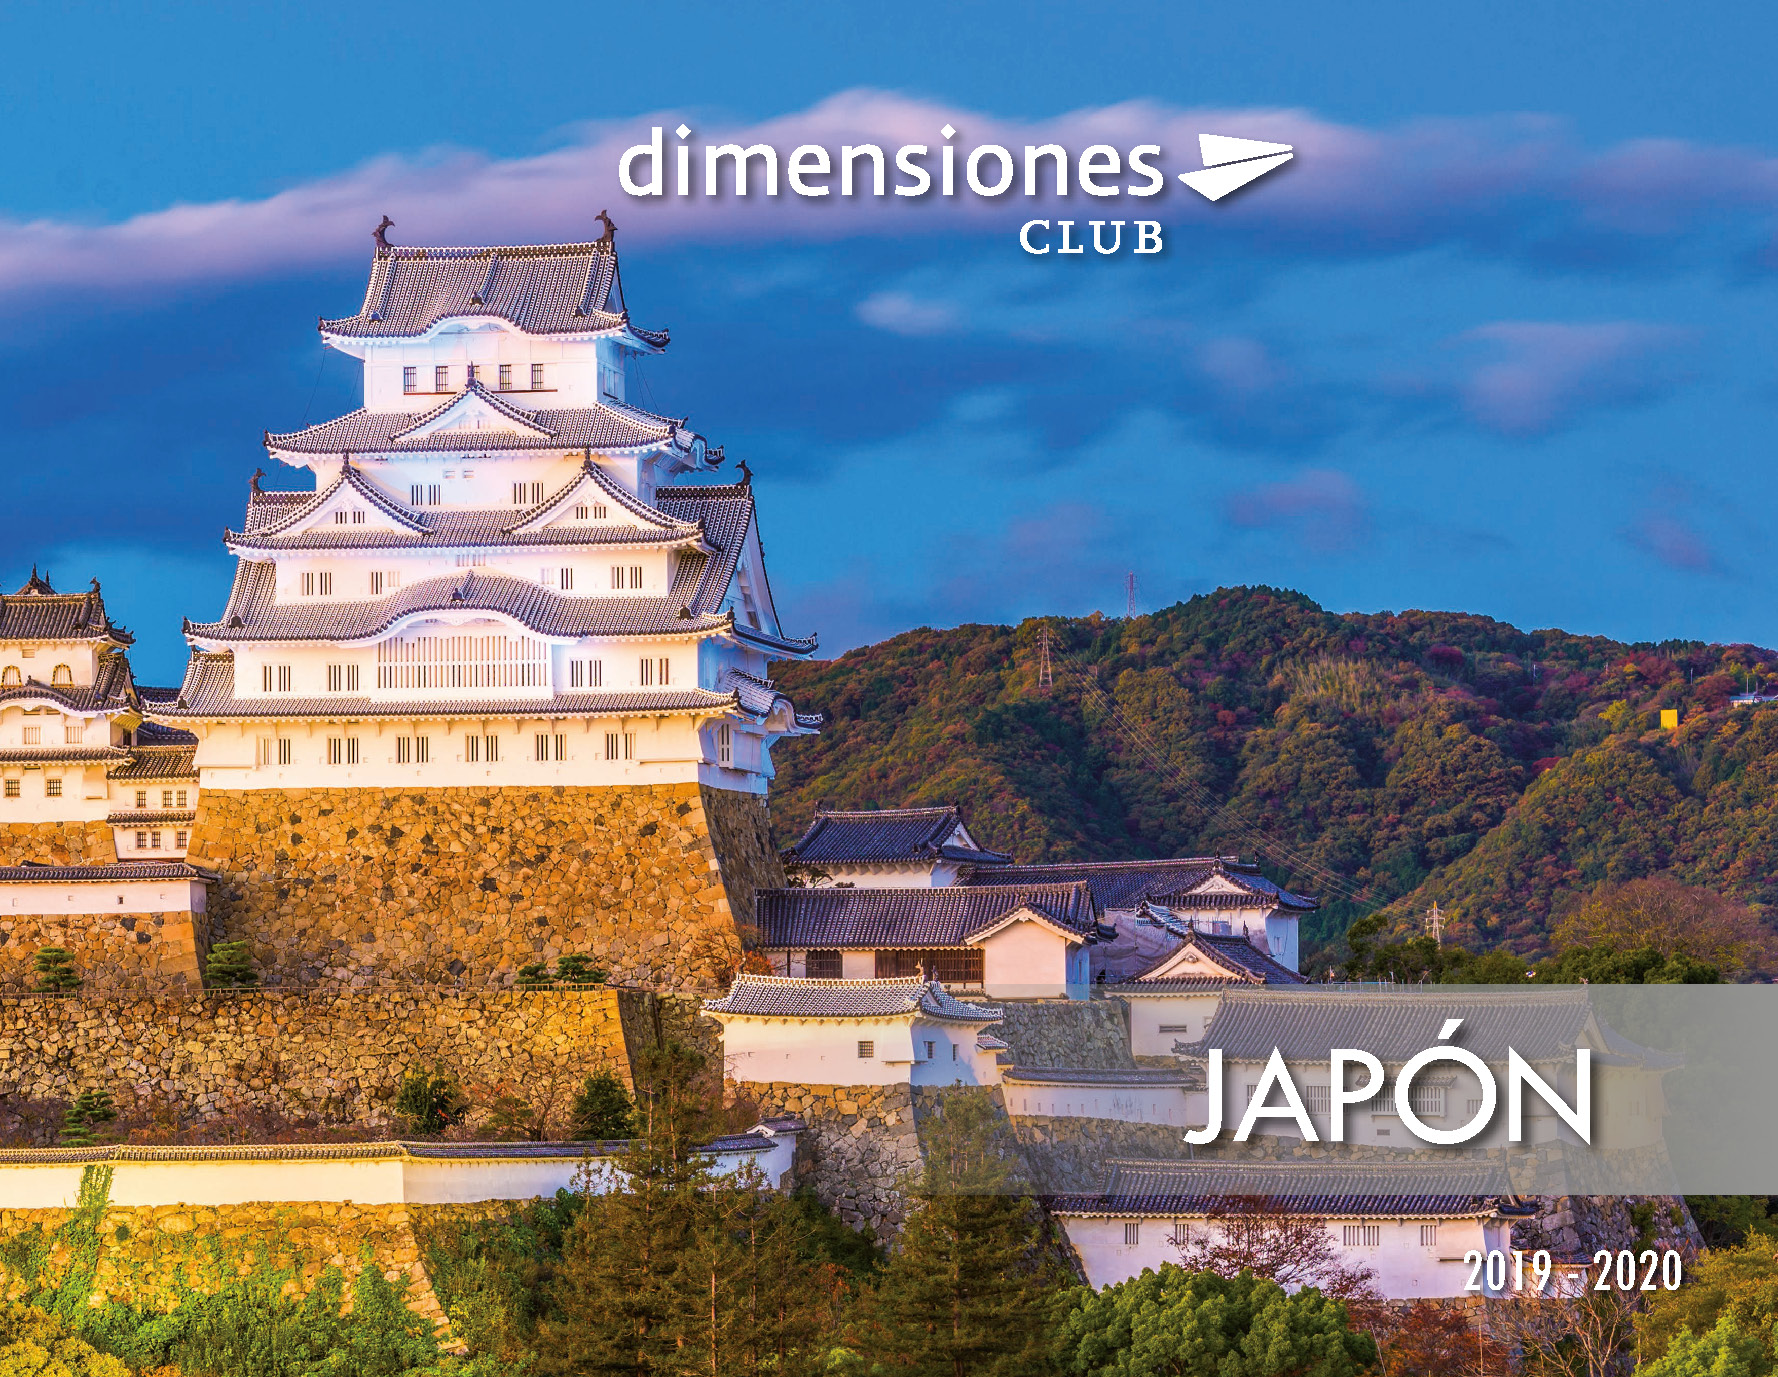 Catalogo Dimensiones Club Japon 2019